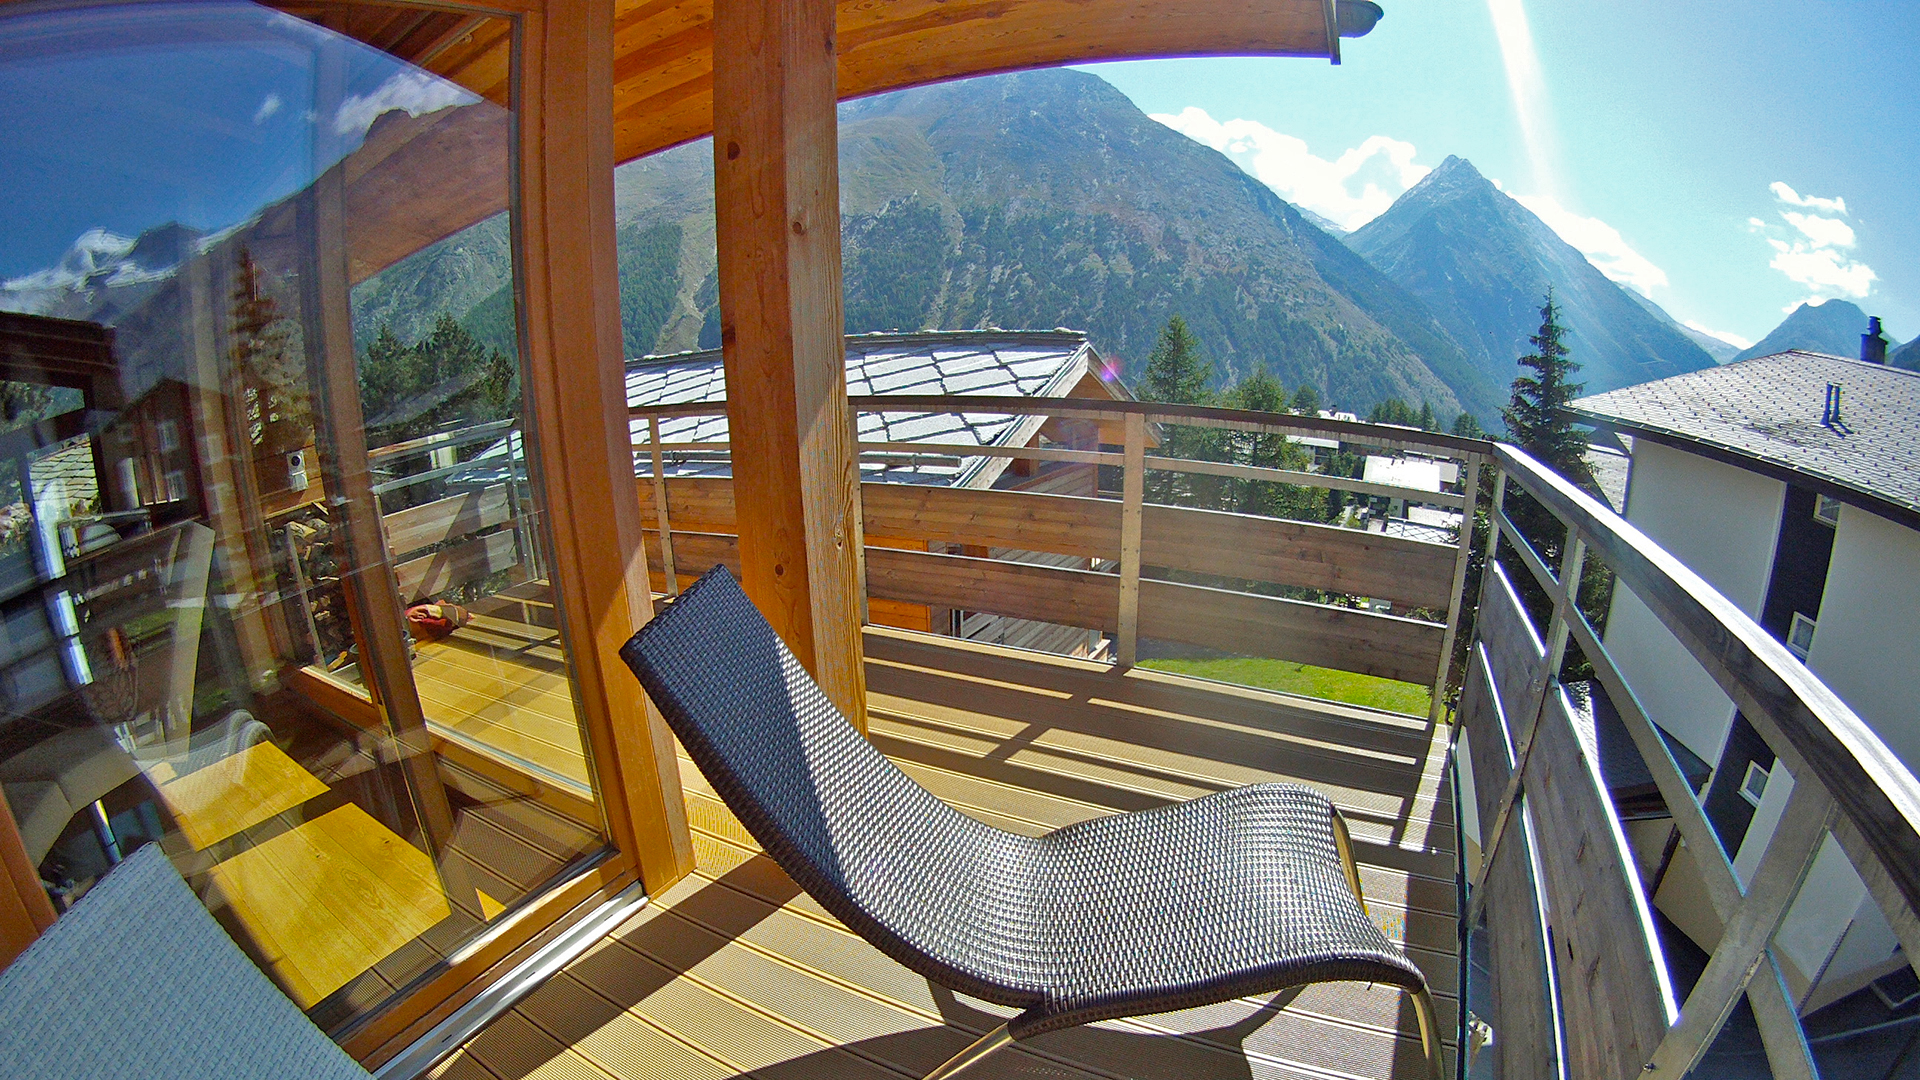 Chalet Papagei Chalet, Switzerland